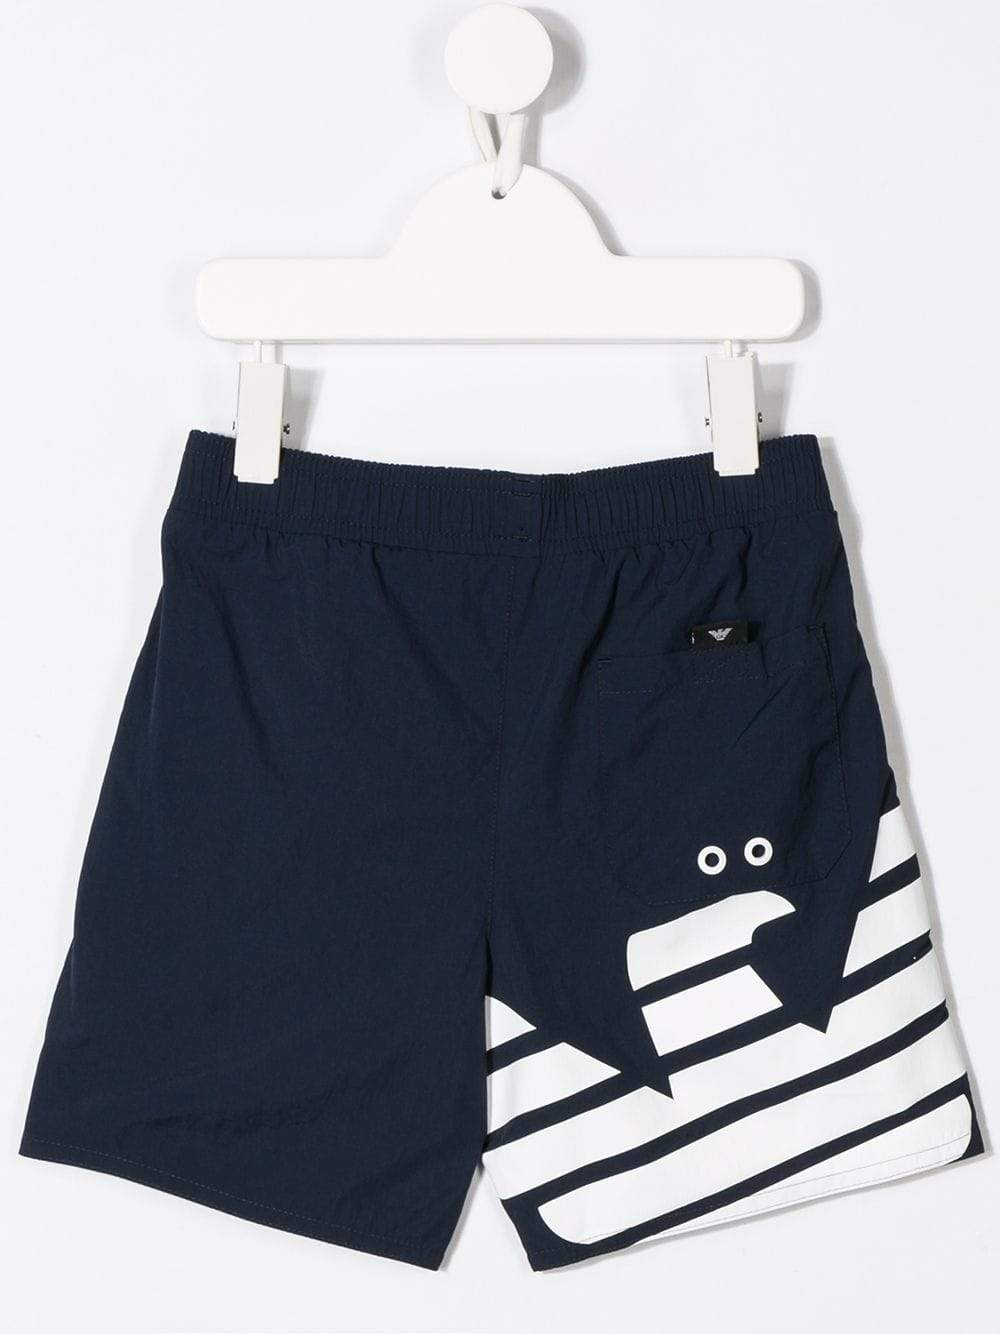 Emporio Armani Kids Navy Swim Shorts - Maison De Fashion